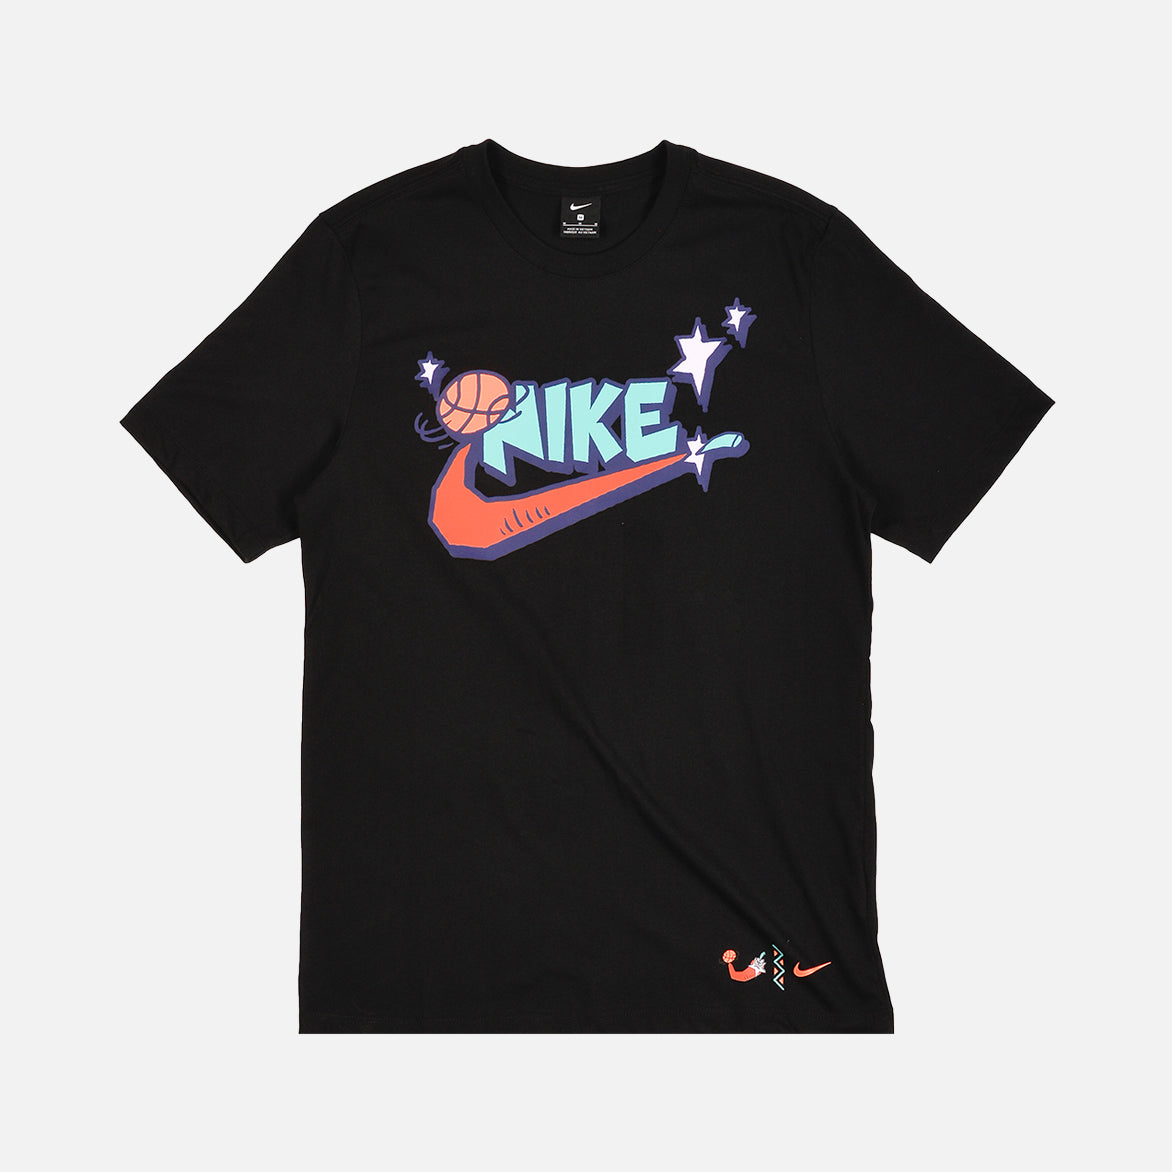 NIKE EXPLORATION SERIES TEE - BLACK